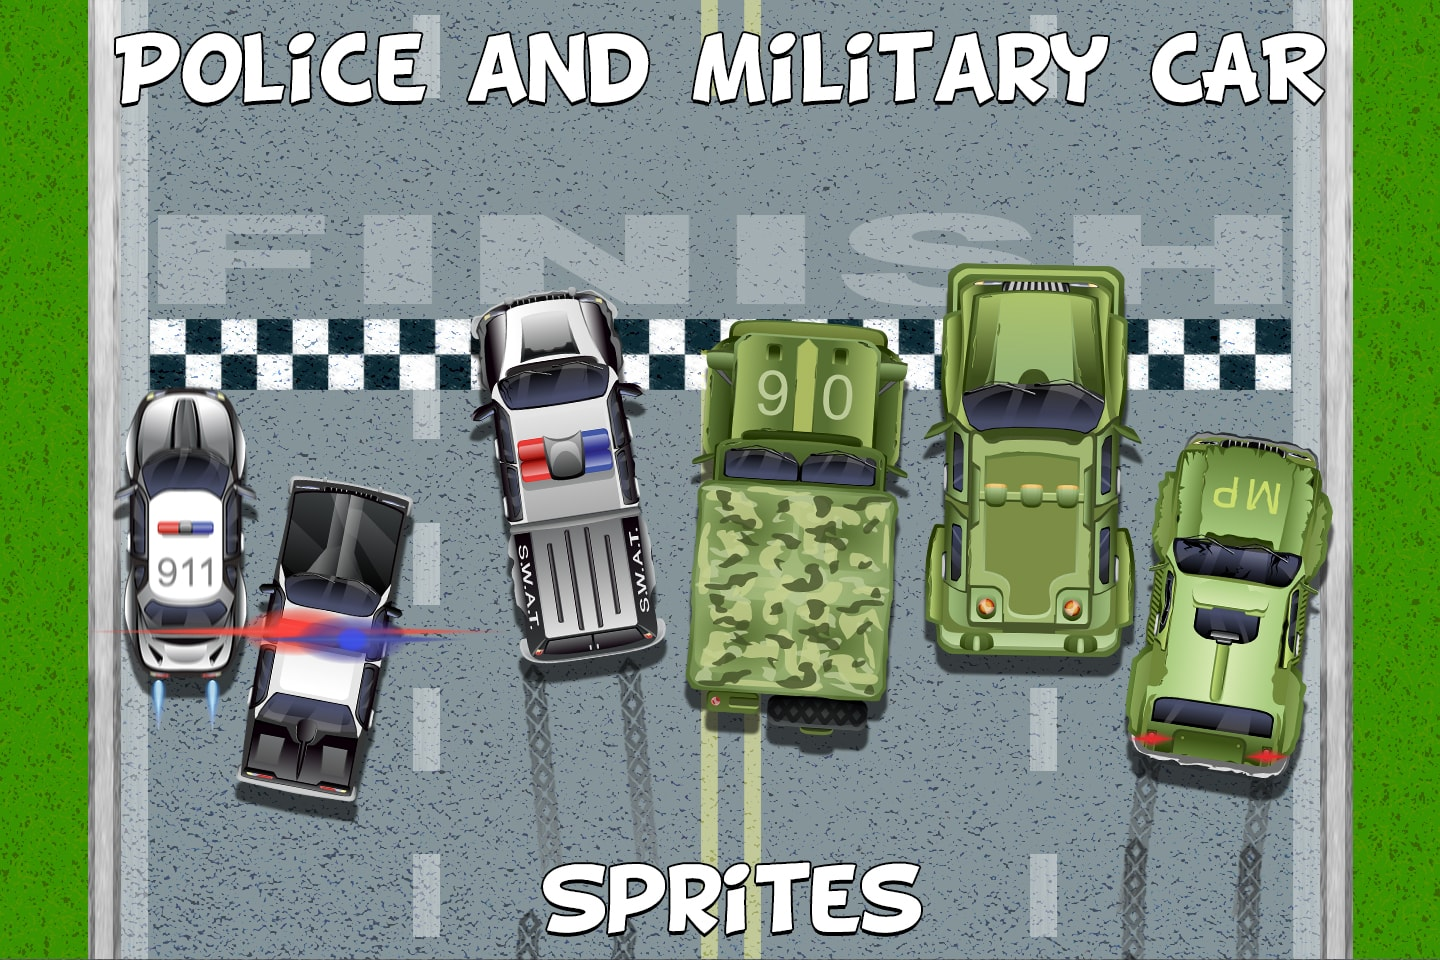 Top Down Police and Military Car Sprites